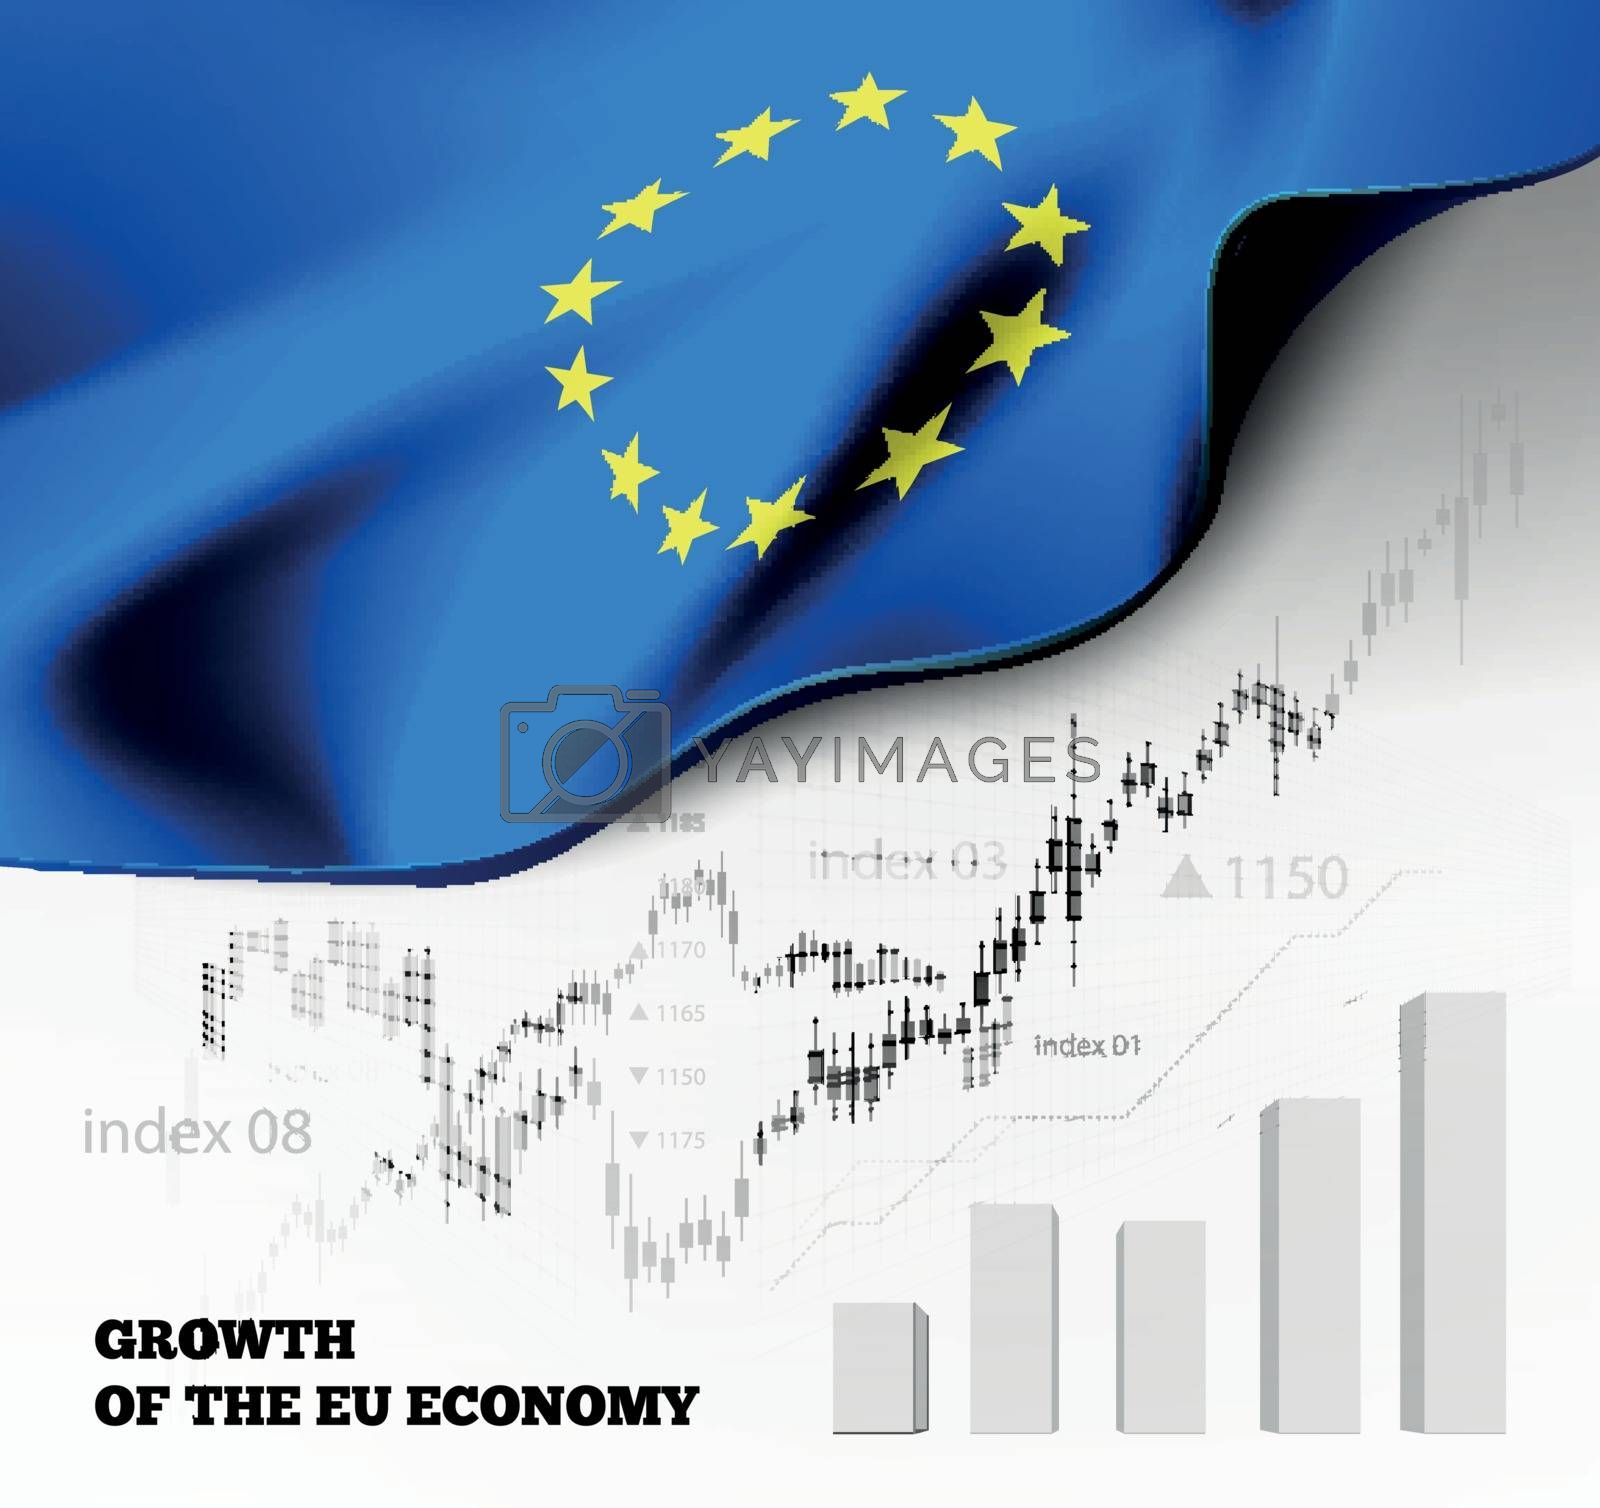 EU economics illustration with the european union flag and business chart, bar chart stock numbers bull market, uptrend line graph symbolizes the welfare growth